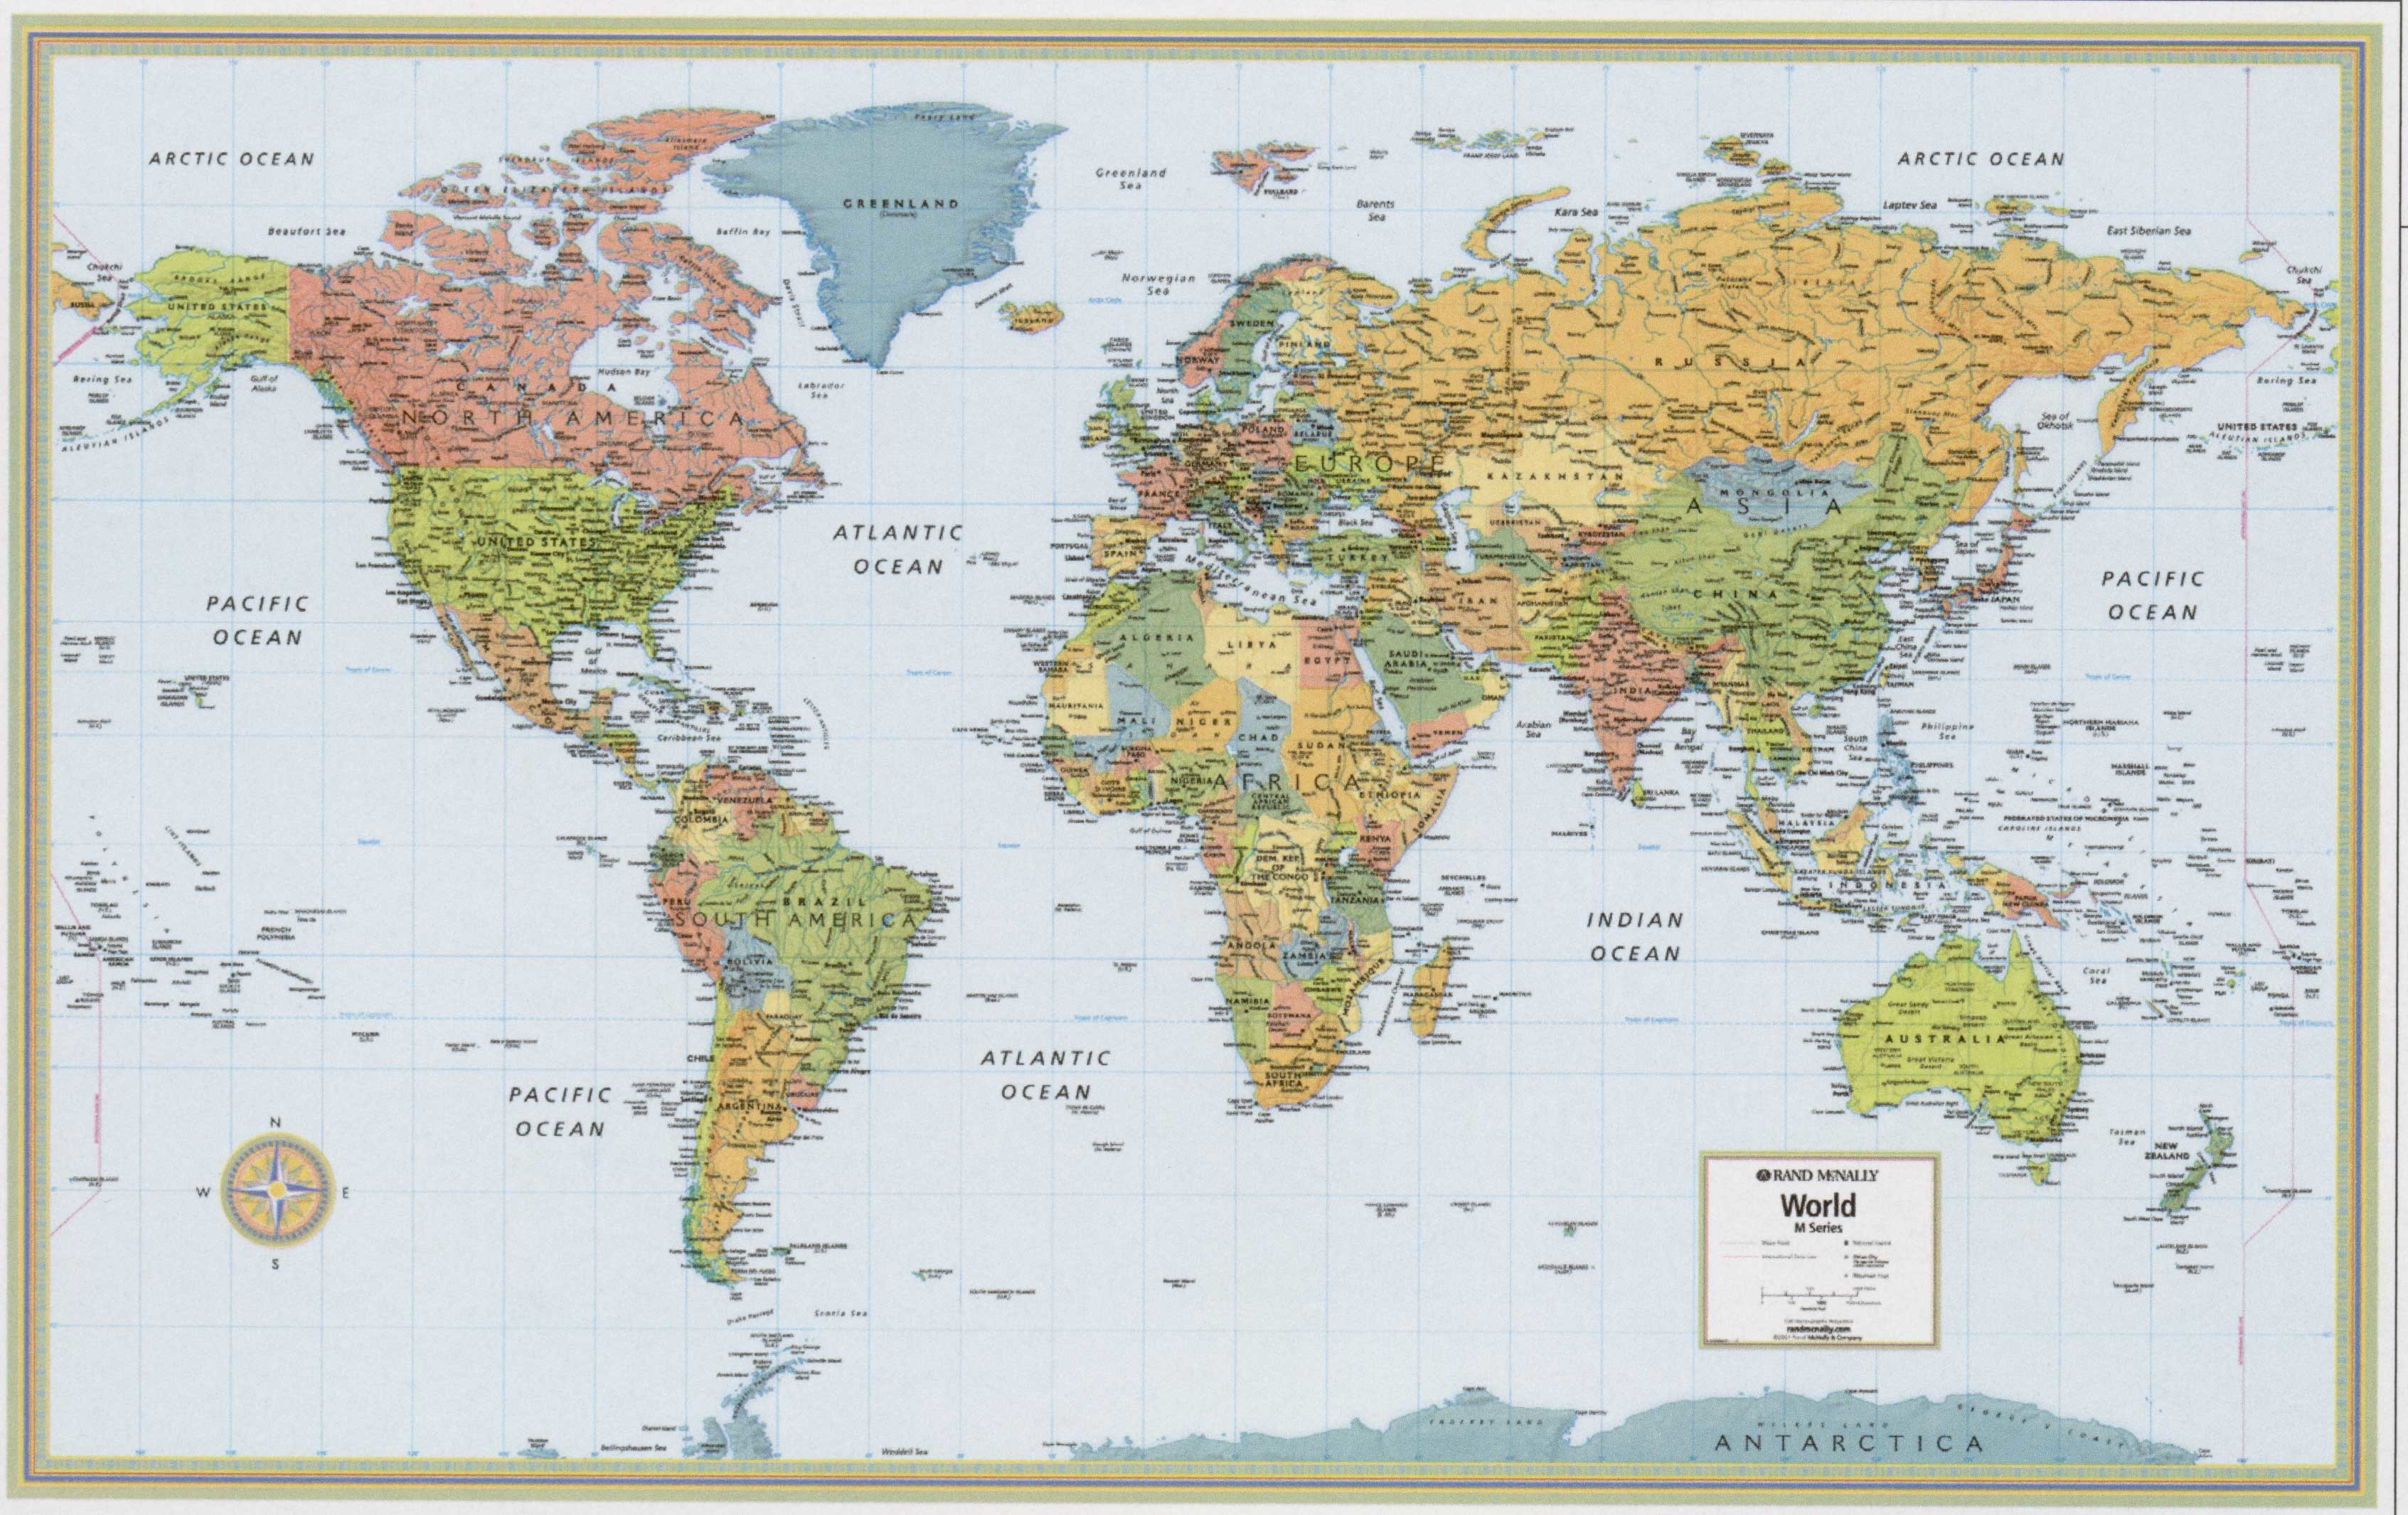 World Map Wallpapers Artsy Wallpapers Pictures Free Download: World Map Wallpaper High Resolution ·① WallpaperTag